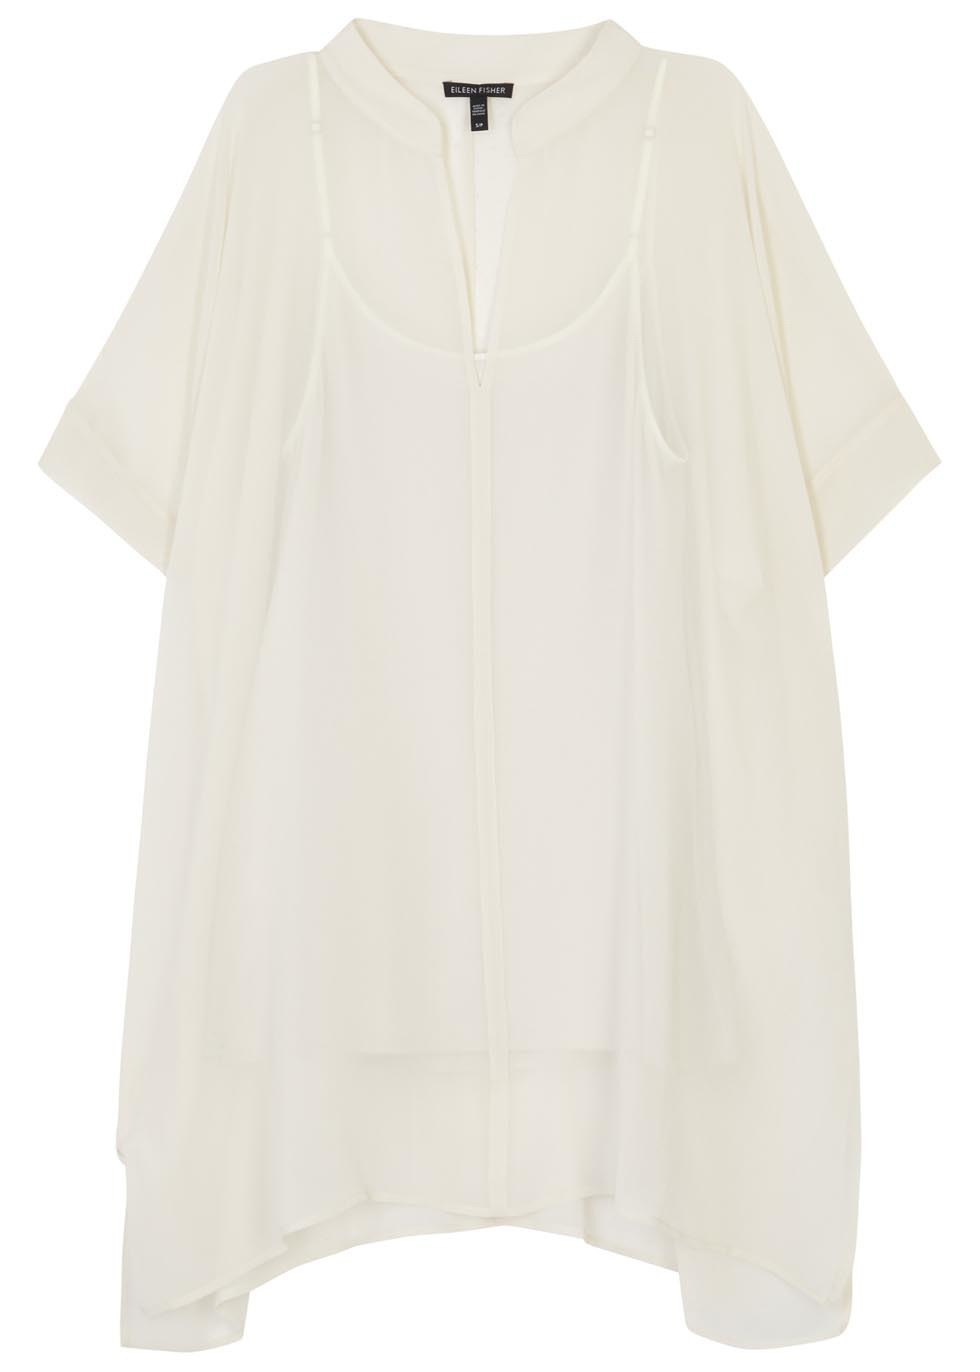 Ivory Silk Georgette Tunic - pattern: plain; style: tunic; predominant colour: ivory/cream; occasions: casual, creative work; neckline: collarstand & mandarin with v-neck; fibres: silk - 100%; fit: loose; length: mid thigh; sleeve length: short sleeve; sleeve style: standard; texture group: crepes; pattern type: fabric; season: s/s 2016; wardrobe: basic